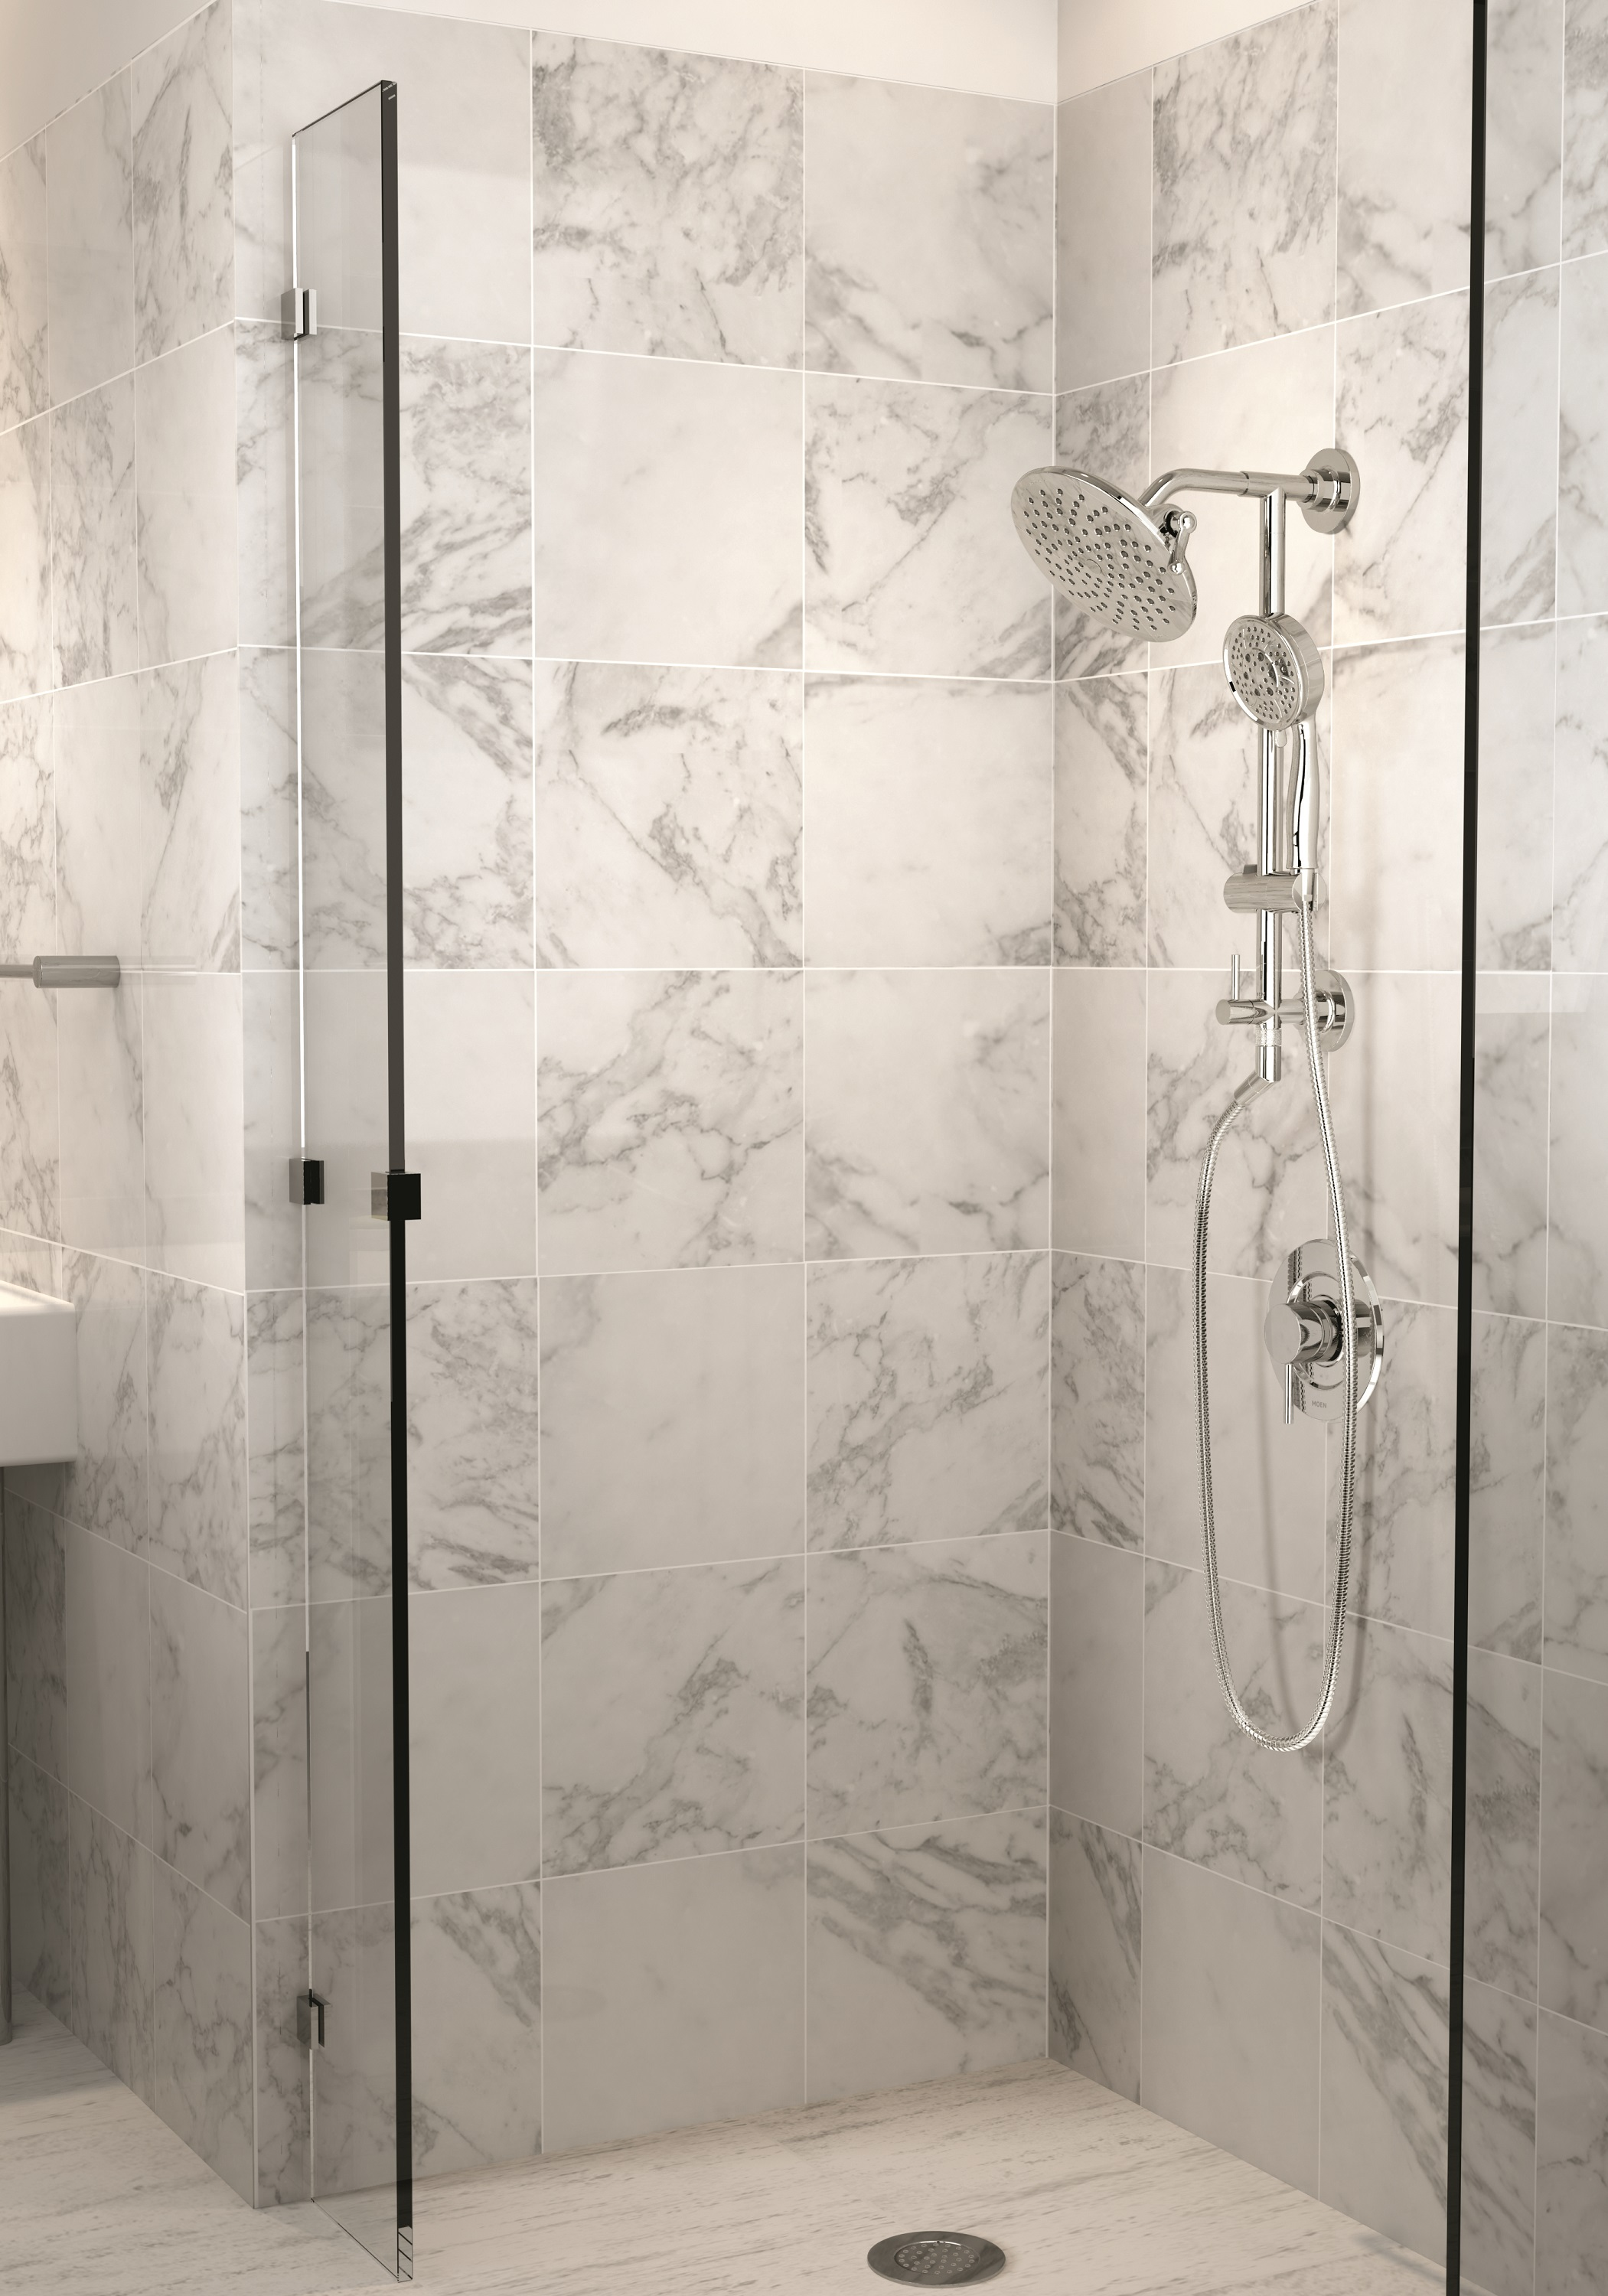 Simply Install Multiple Showerheads with Moen\'s First Shower Rail System